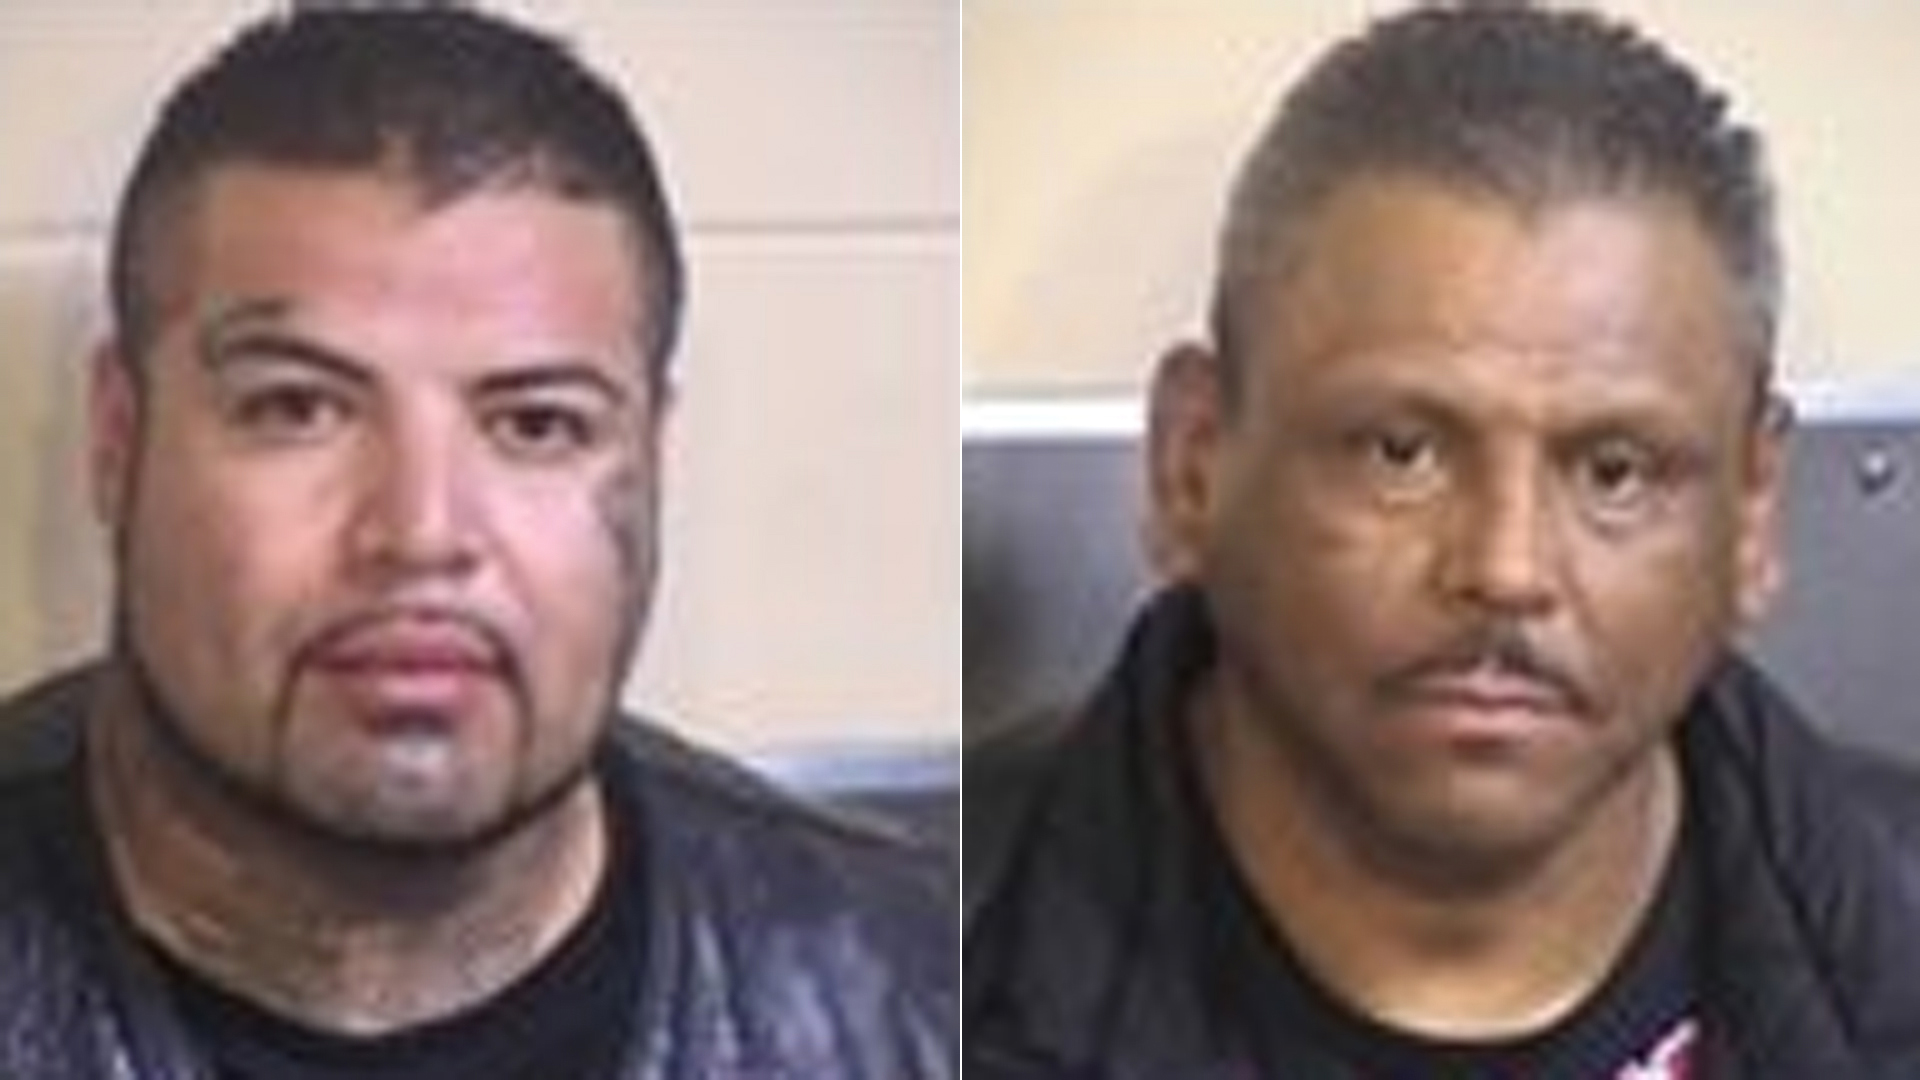 Of those arrested, only Rey Rodriguez, left, and Stephen Meza, right, were accused of being gang members in possession of firearms. (Credit: Fresno County Sheriff's Office)